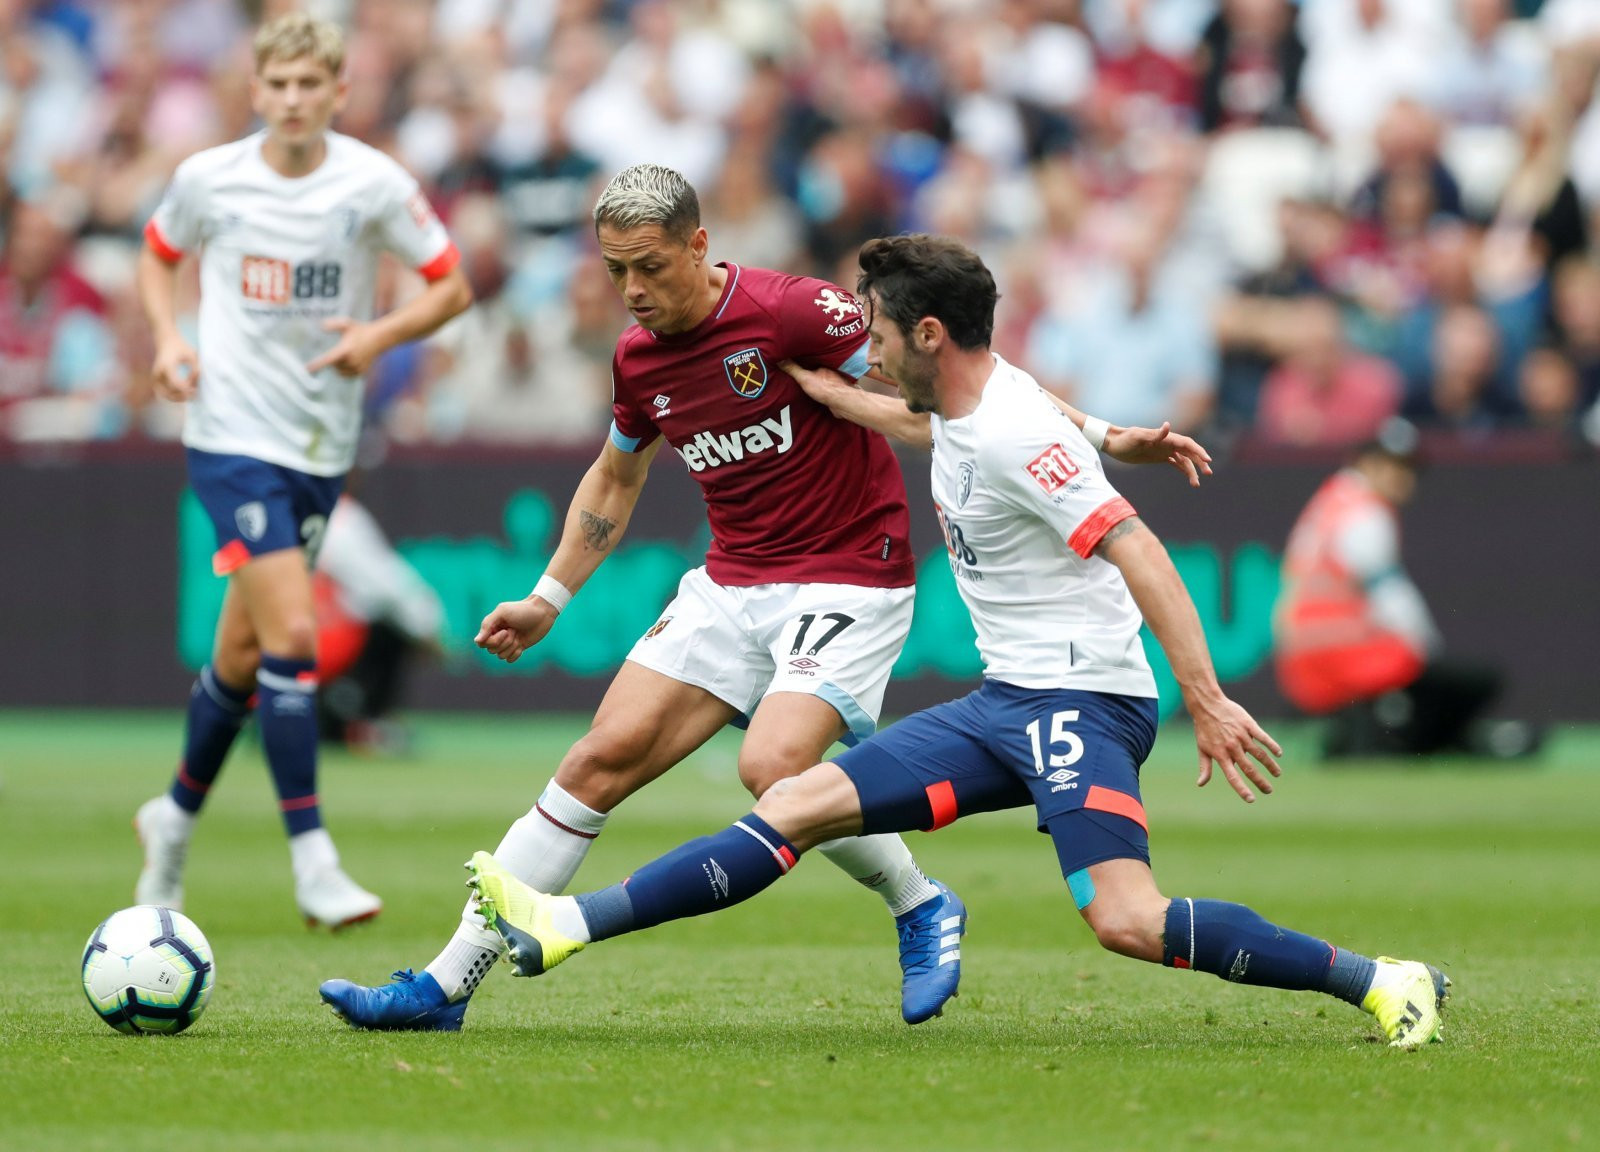 West Ham fans divided over Hernández's future